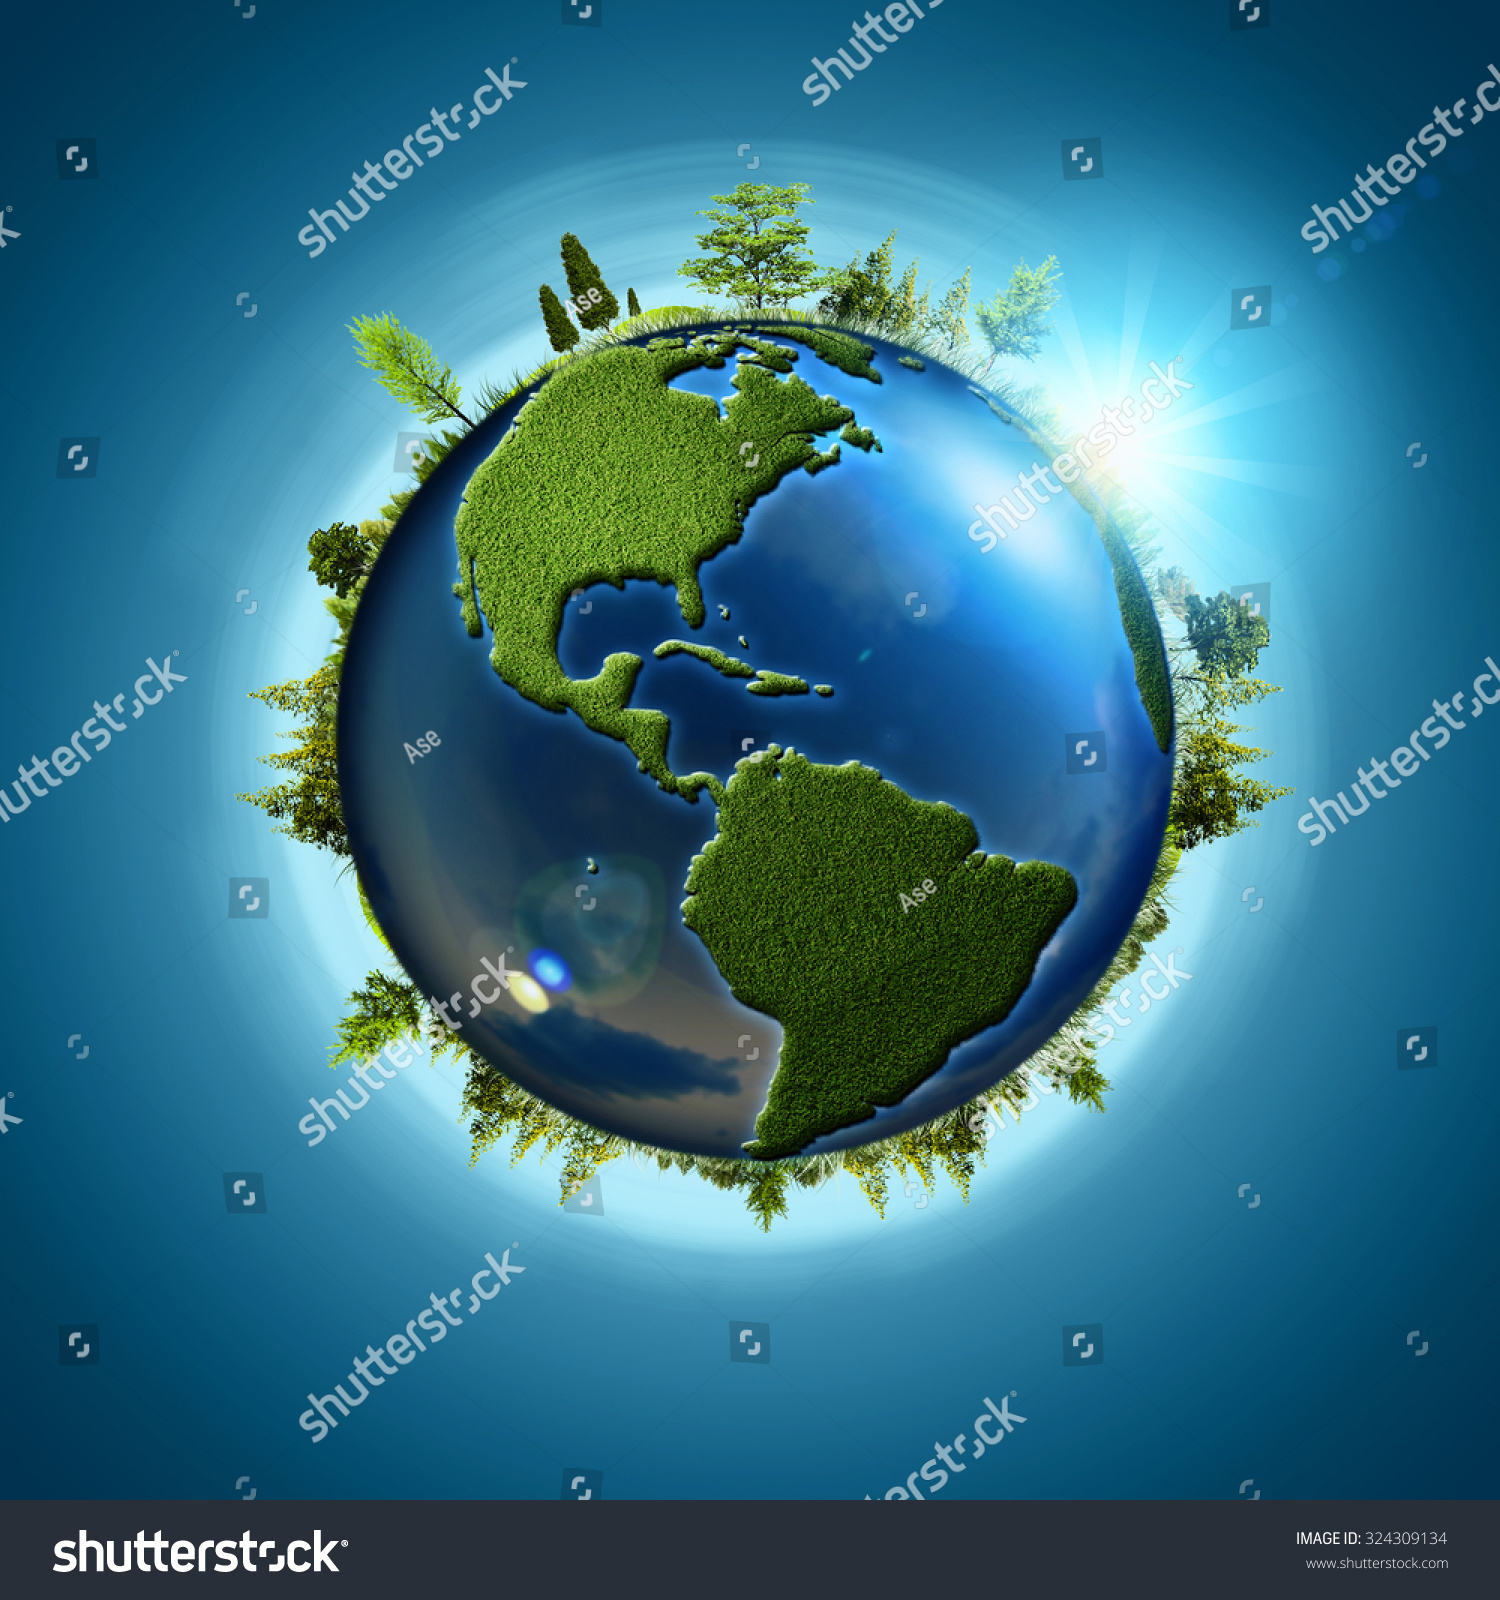 Blue Planet Abstract Eco Backgrounds Earth Stock Photo